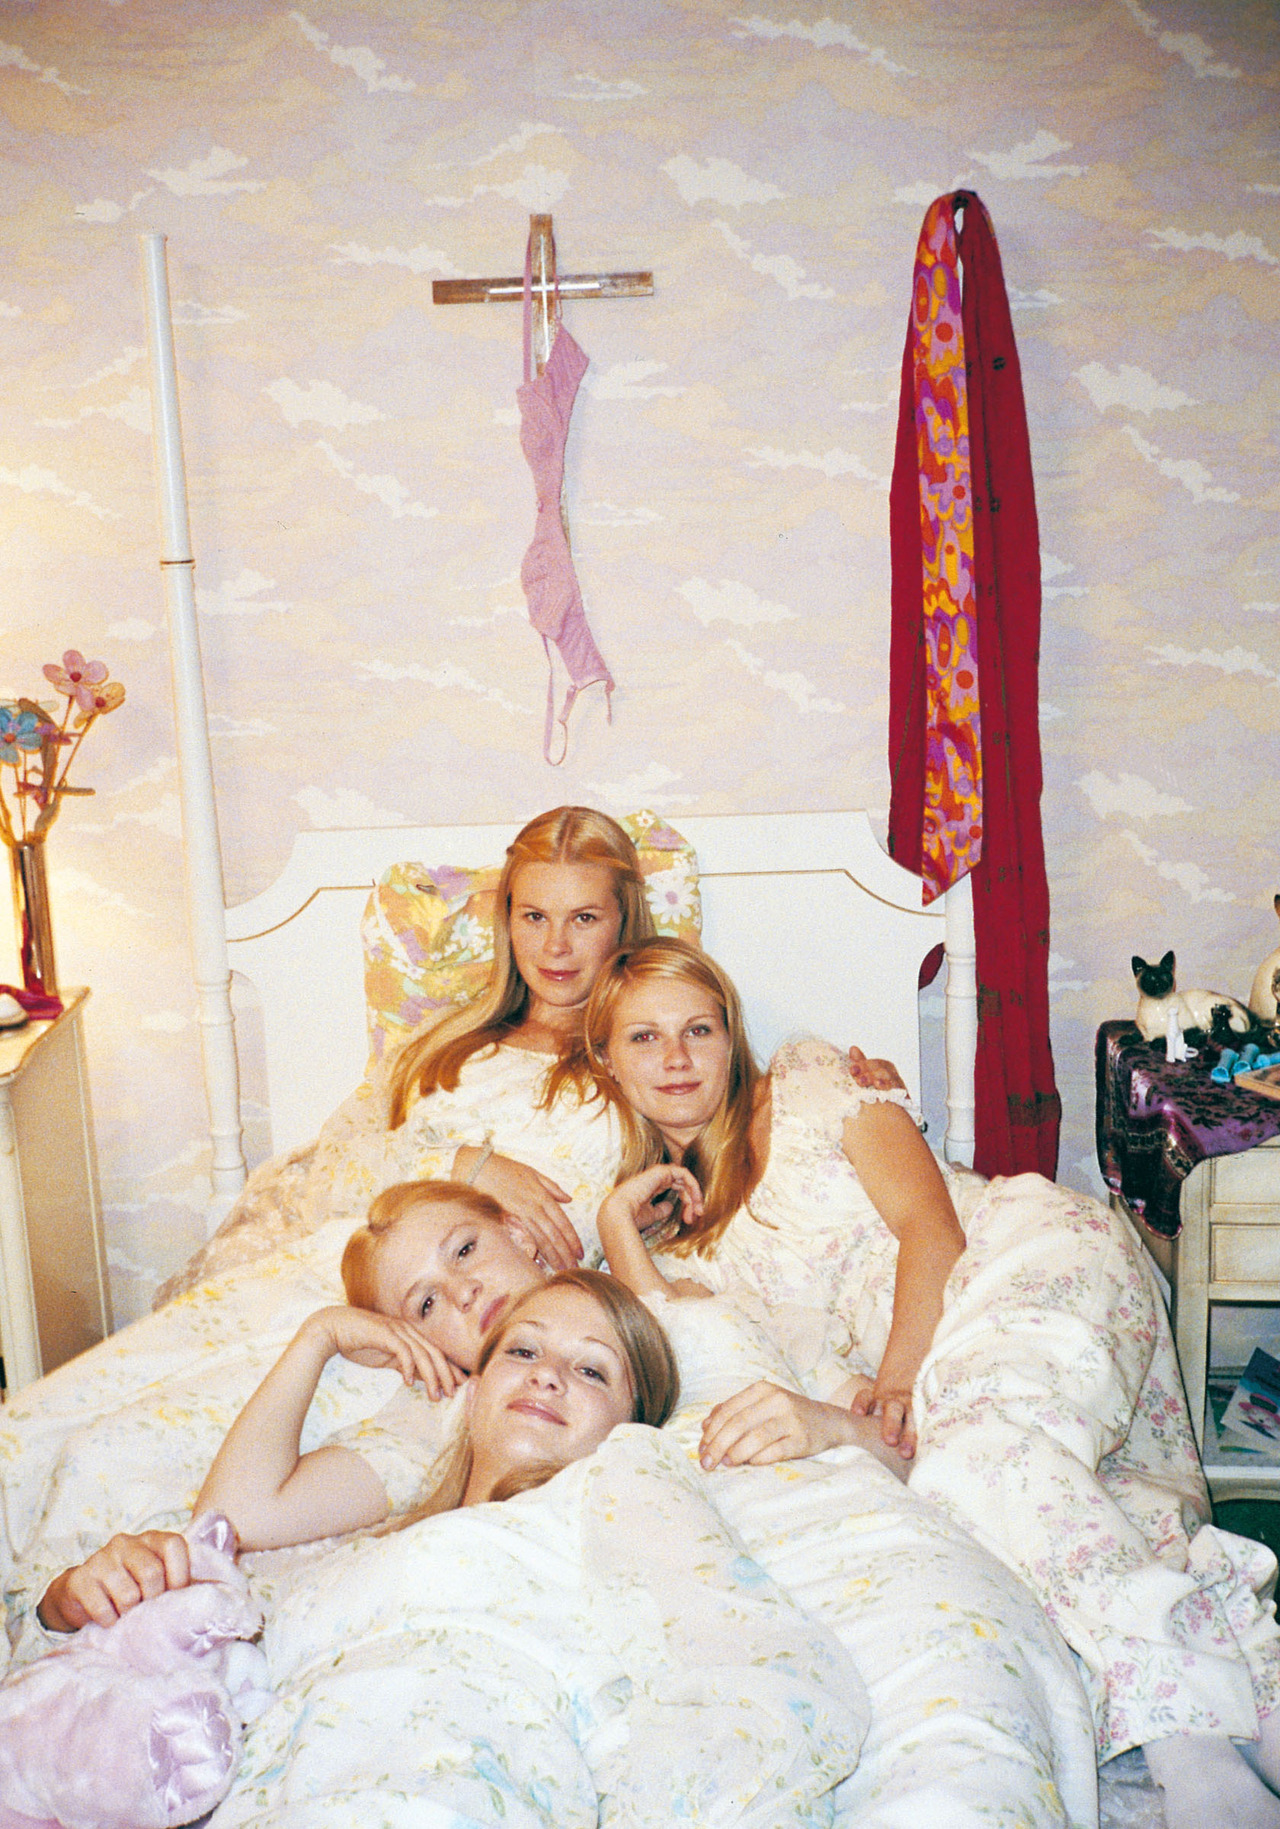 bohemea:  The Virgin Suicides